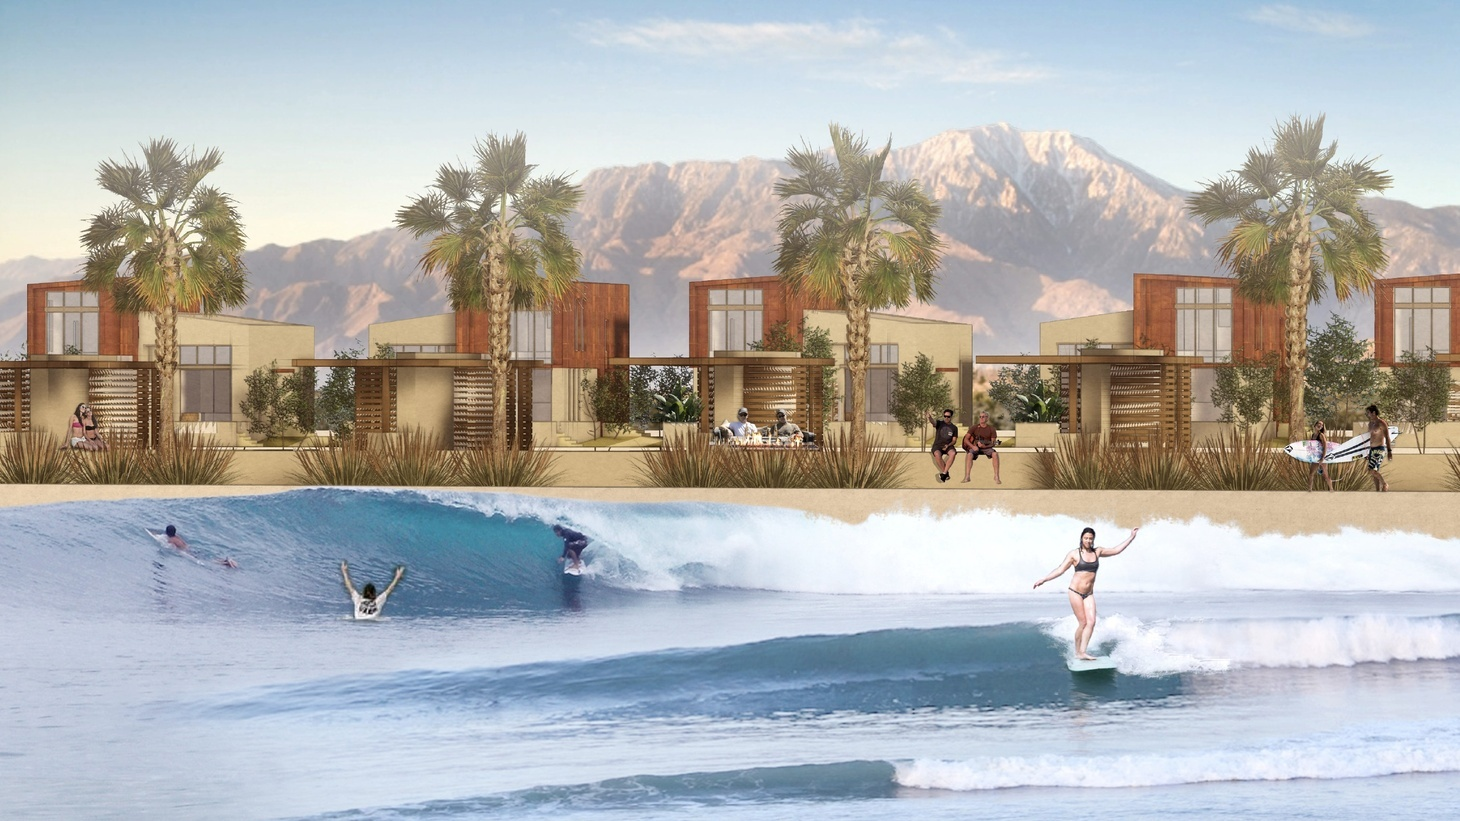 DSRT Surf is going to be an 18-acre resort with a large wave pool as its anchor. A hotel, residential villas, and two 18-hole golf courses will all be a part of the development in Palm Desert.